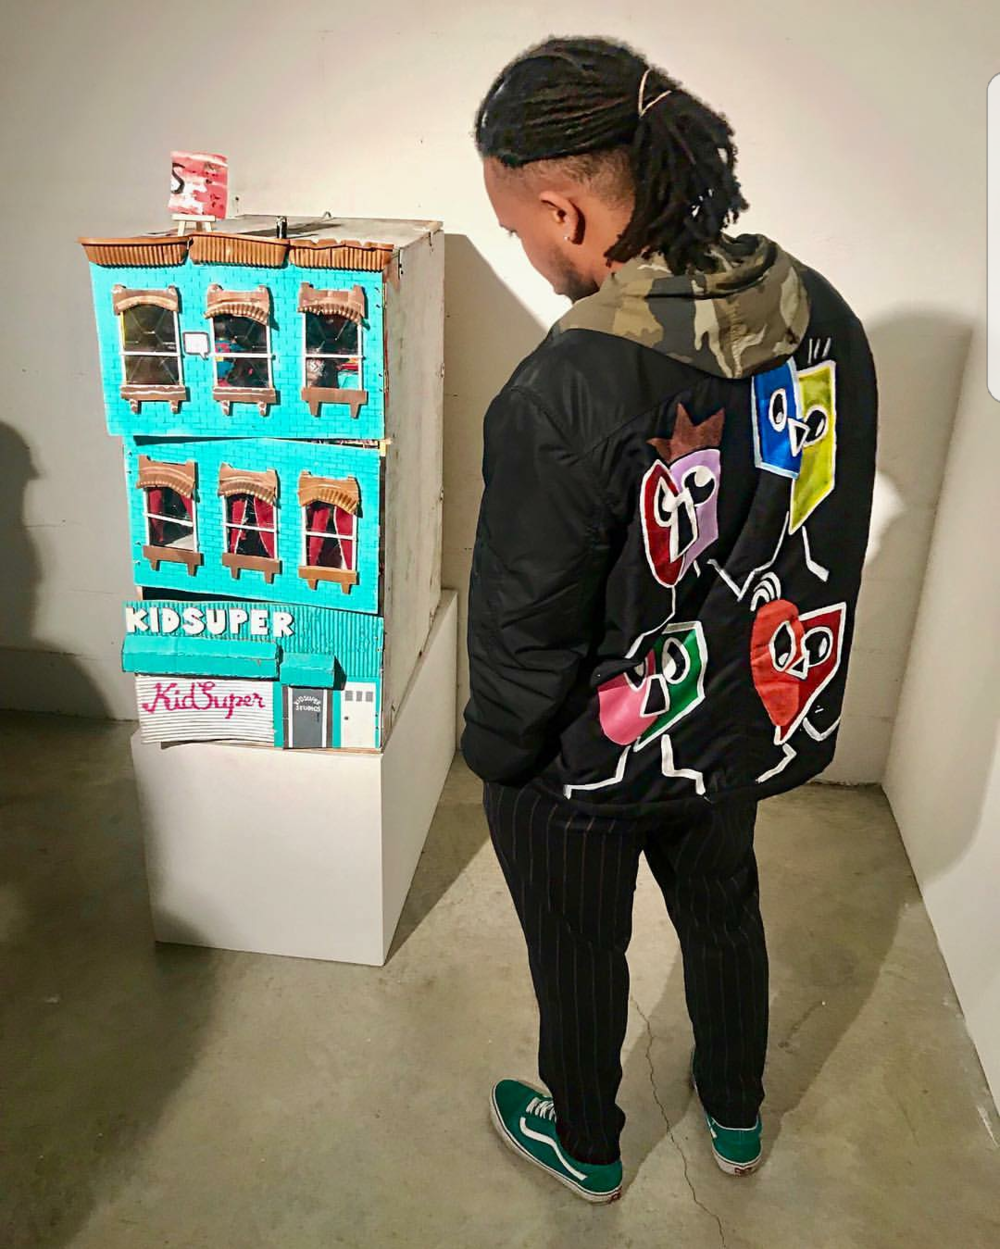 Here is a photo of  Nicodex Dubois  (@niconoflaw) admiring KidSuper's model-replica of the studio and storefront located in Brooklyn. Nicodex is wearing a jacket designed by artist P-Studios James.